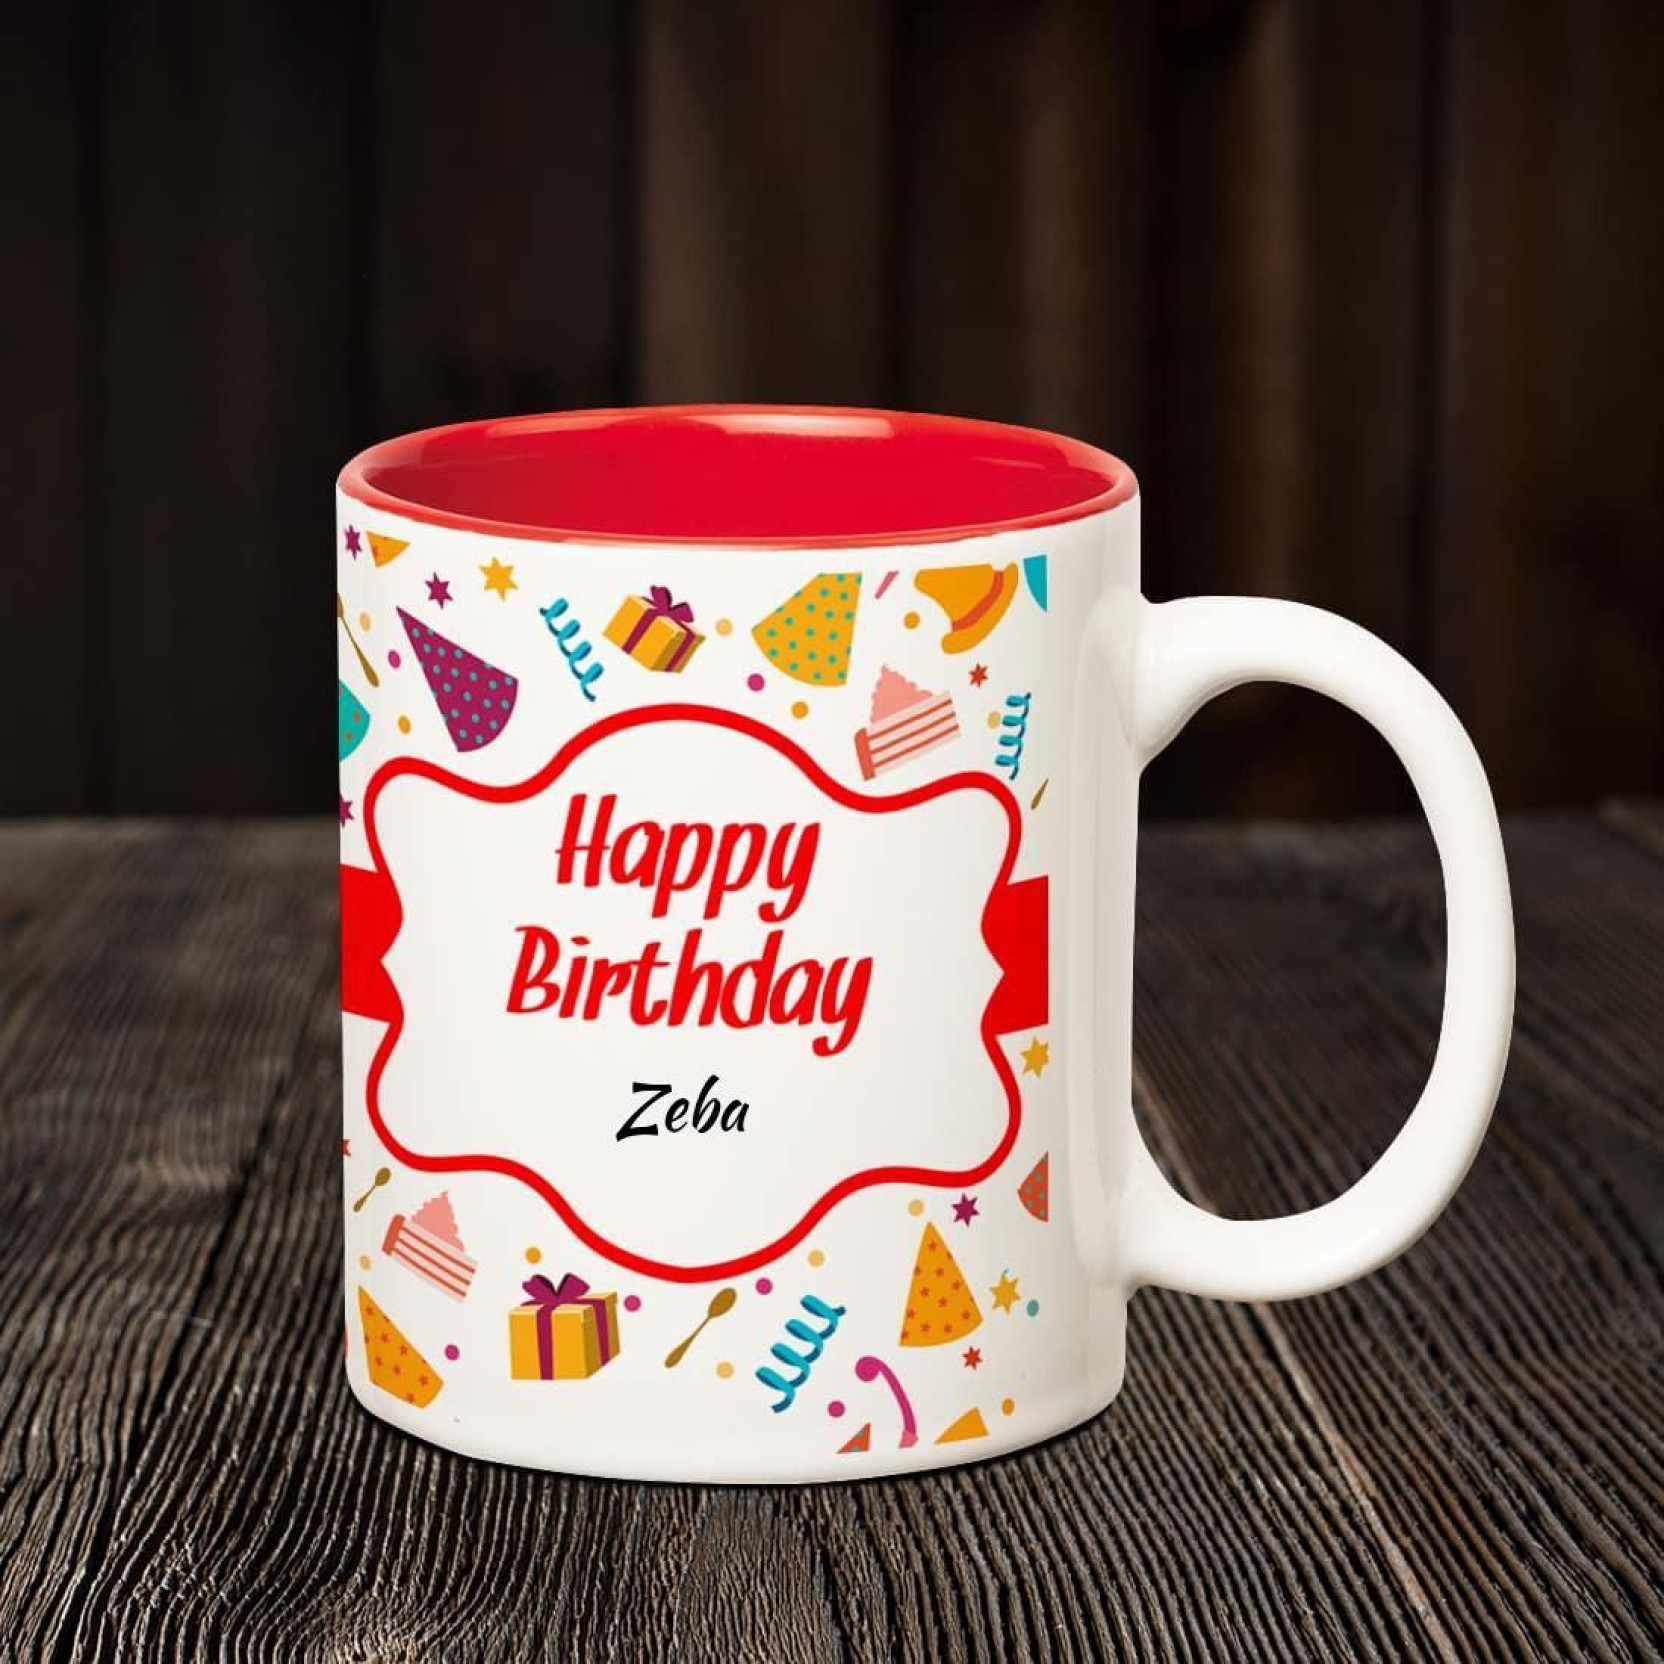 Huppme Happy Birthday Zeba Inner Red Coffee Name Mug Ceramic 350 Ml